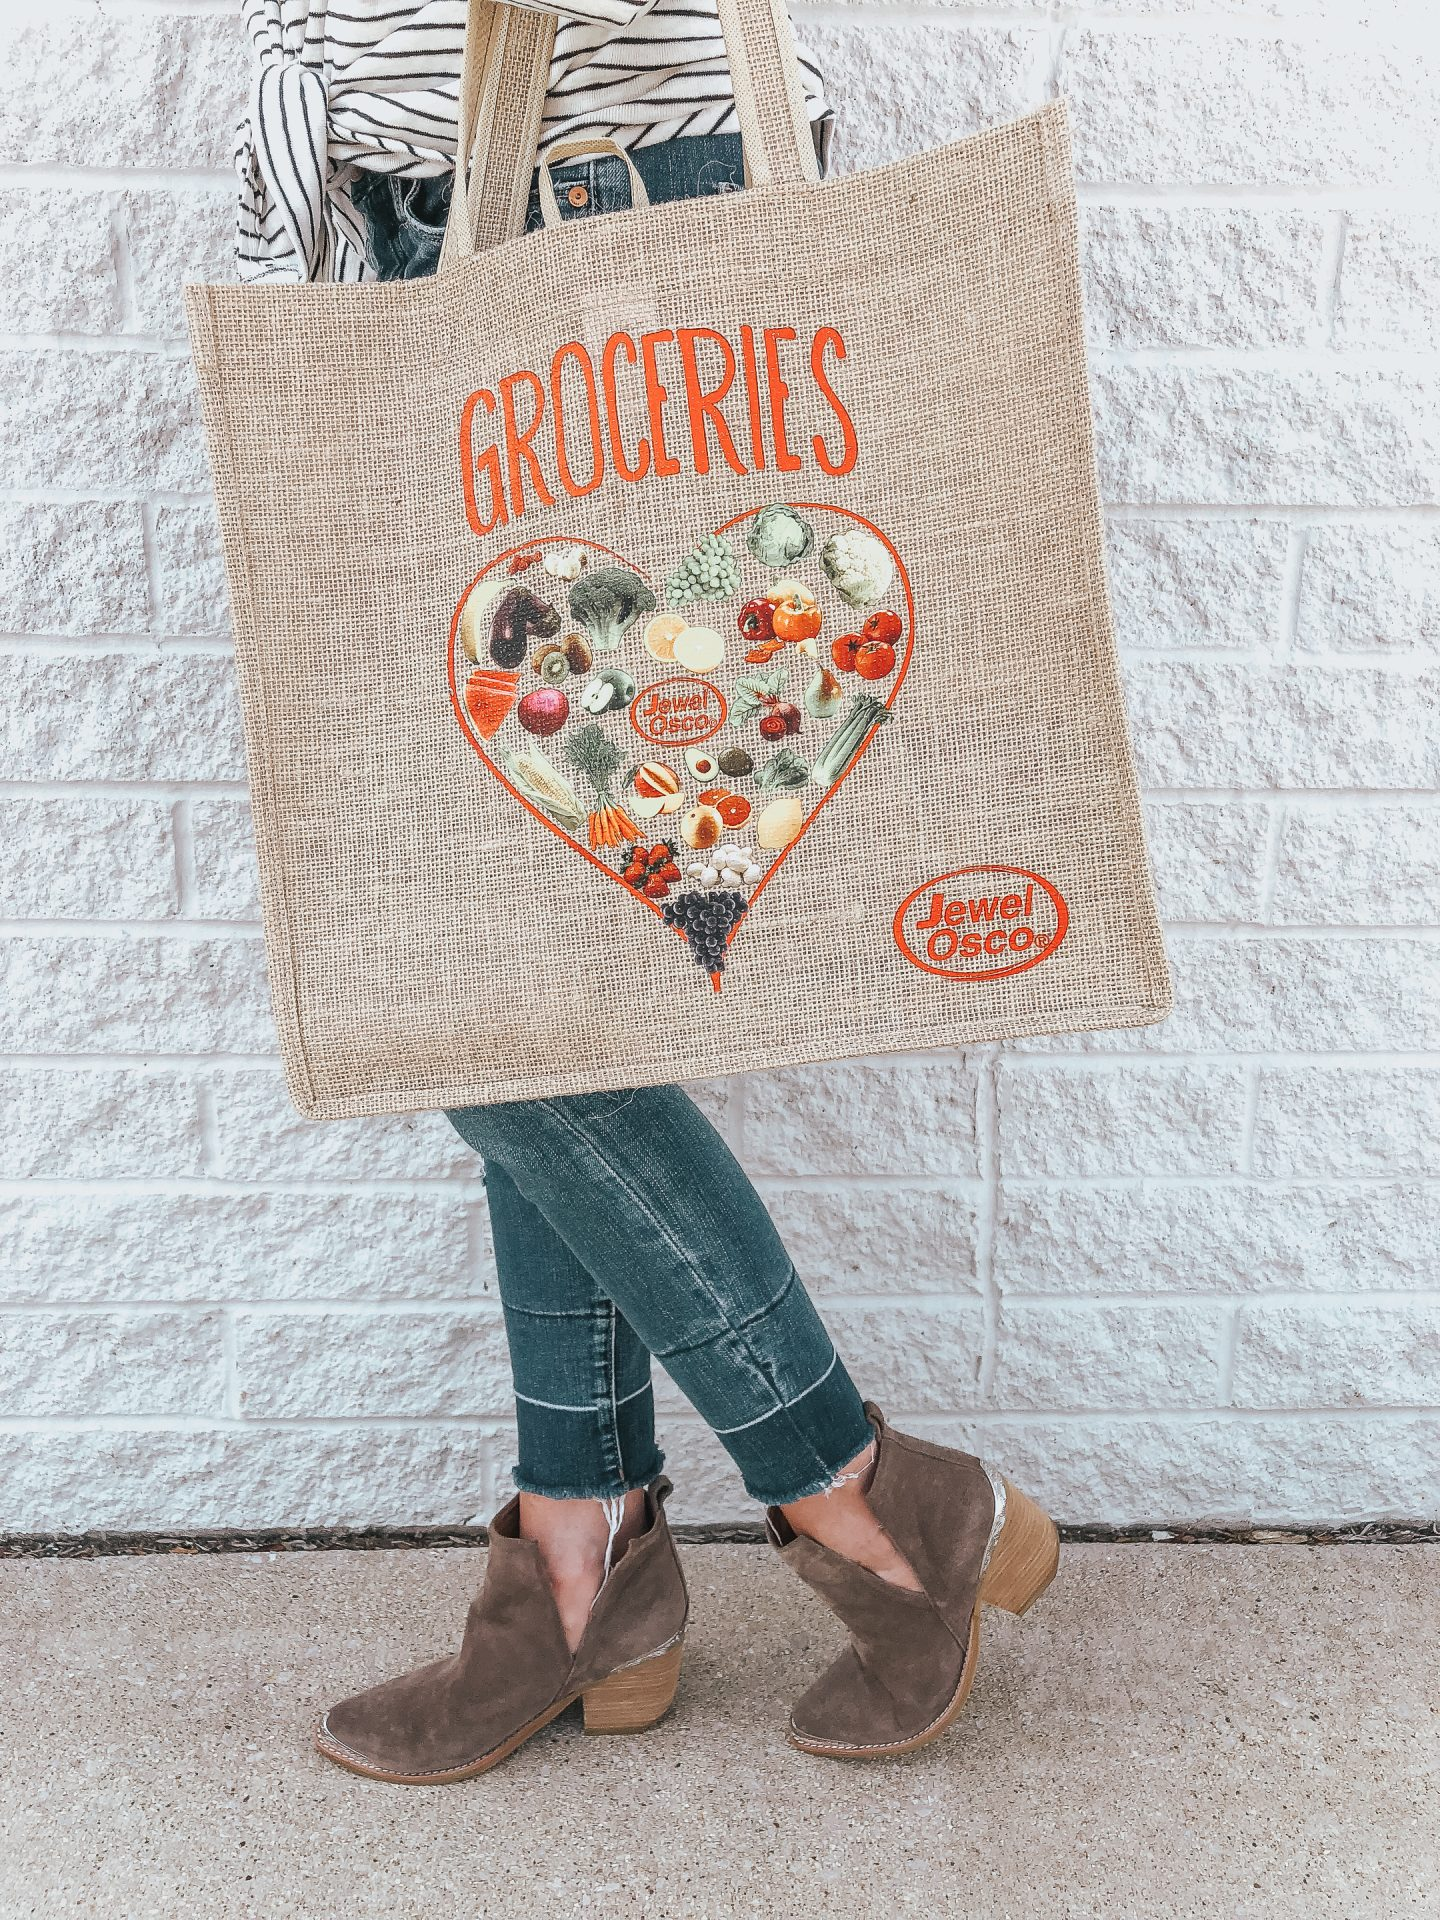 how I stock up on groceries for the week, weekly meal prep essentials with Jewel Osco, family dinners, easy weeknight meals, easy snacks for the kids